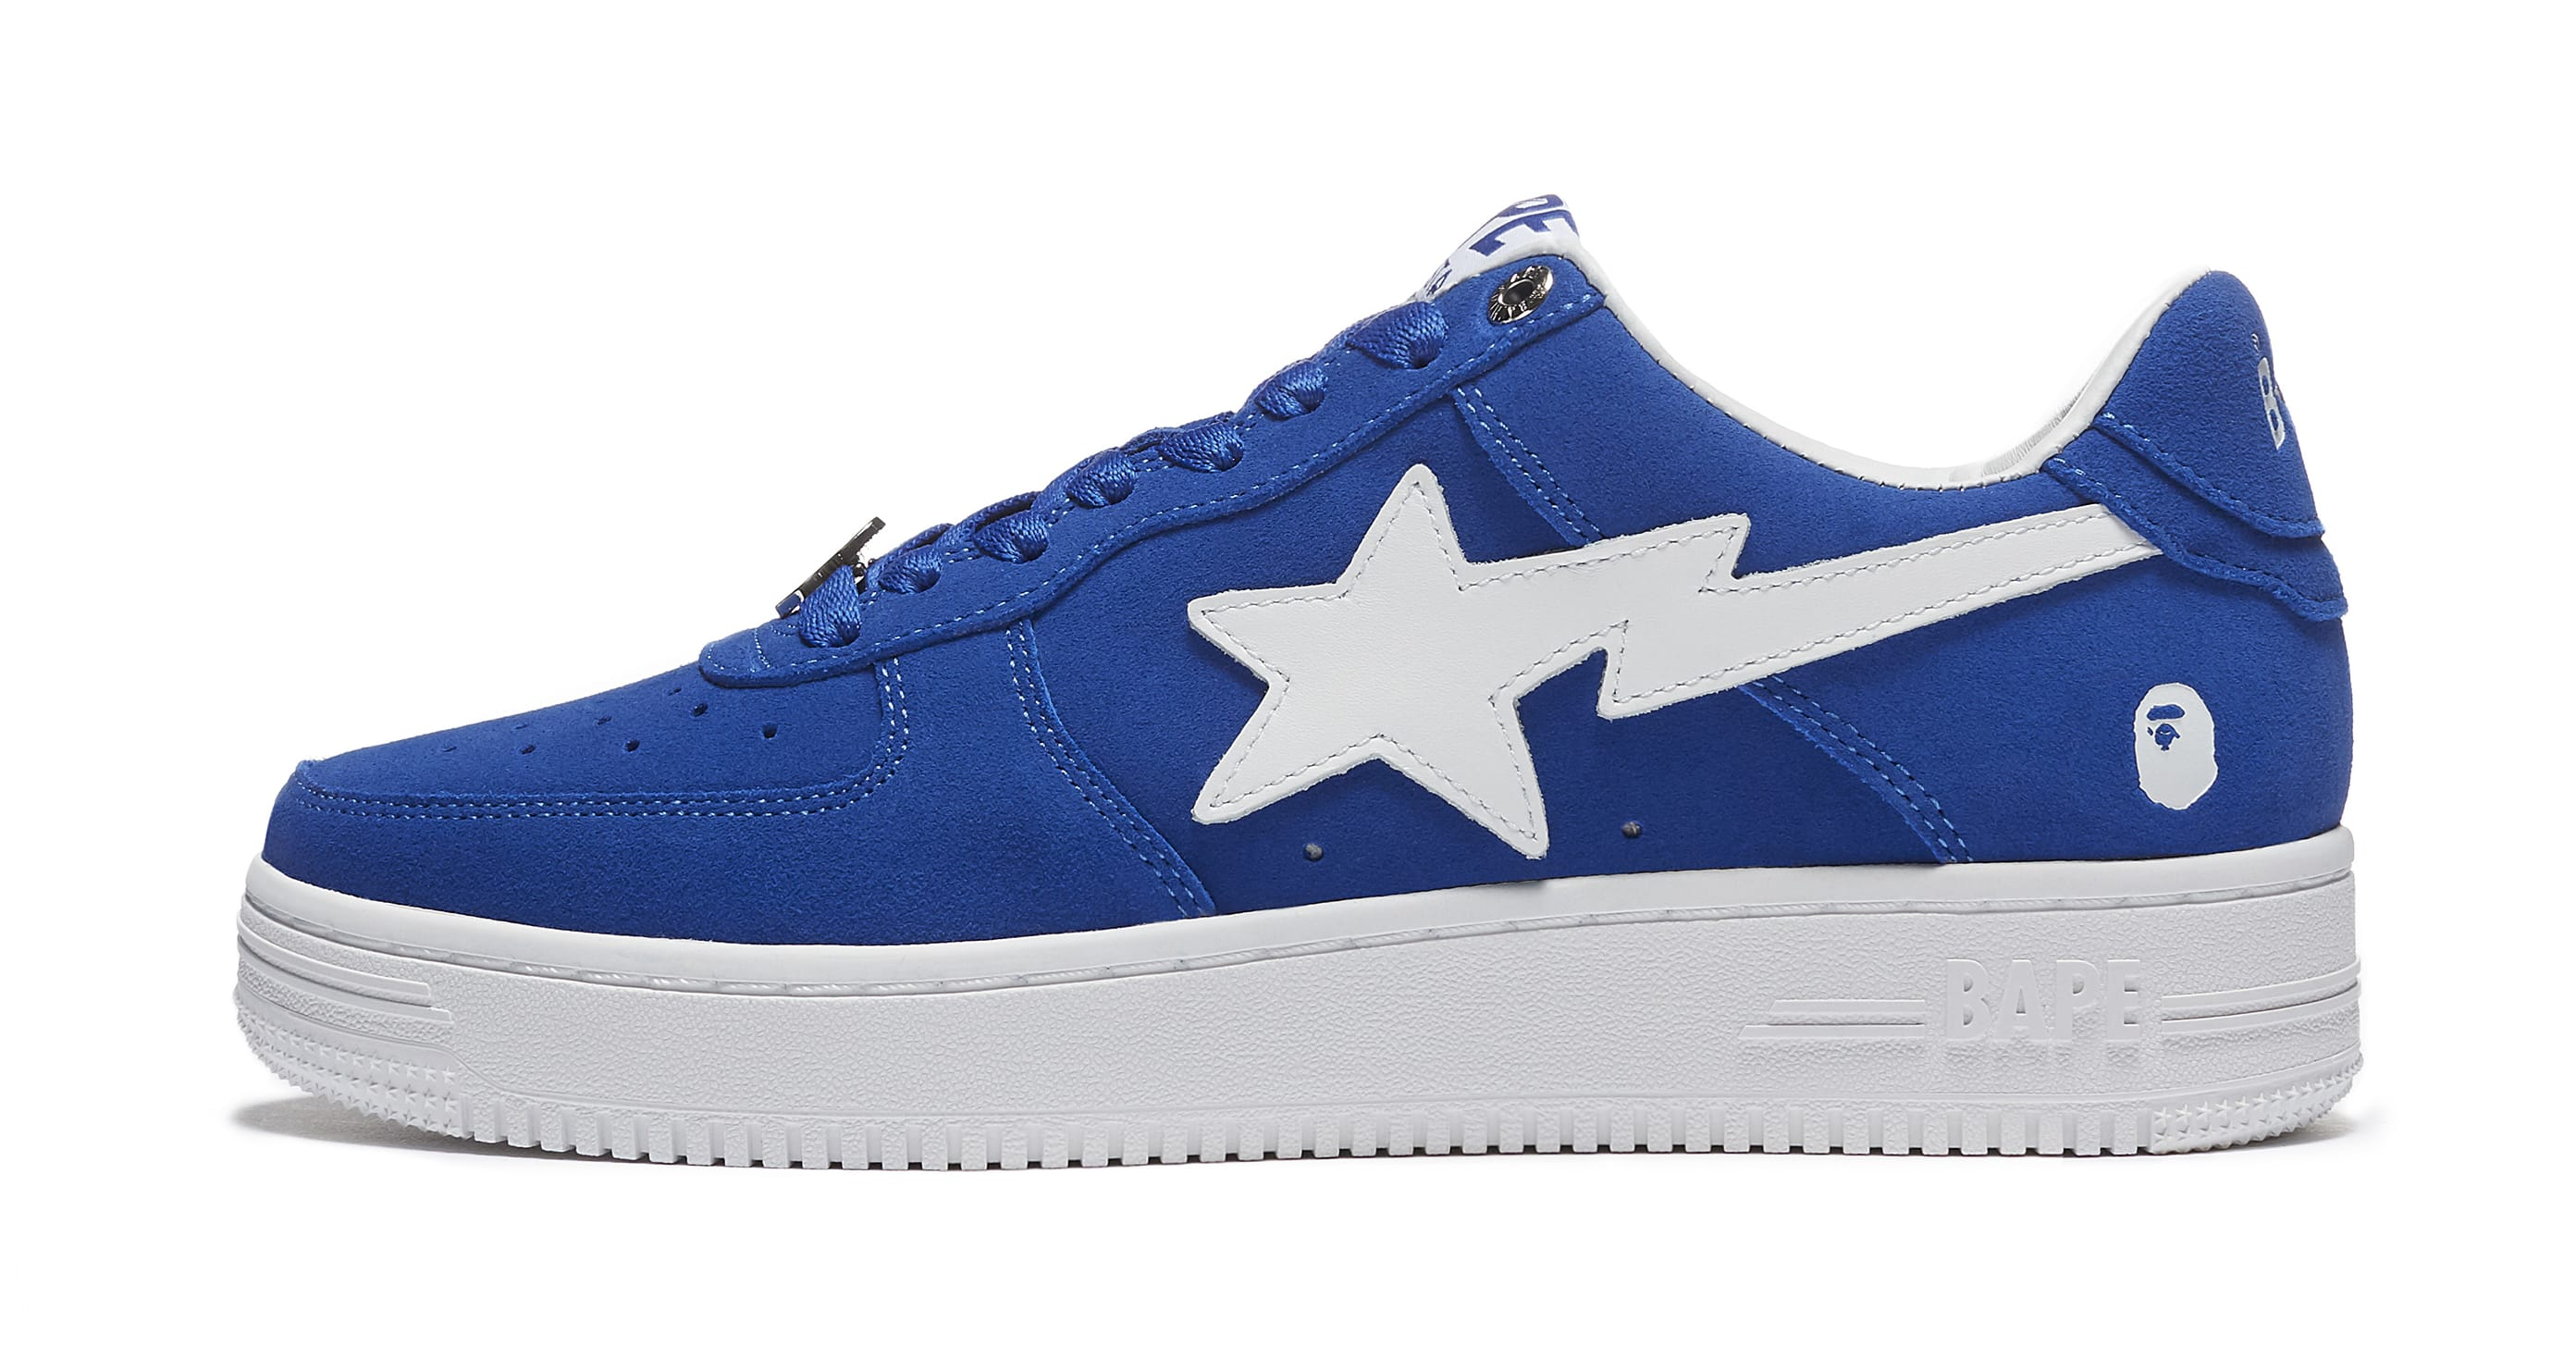 Bape Sta Suede 'Blue' Lateral